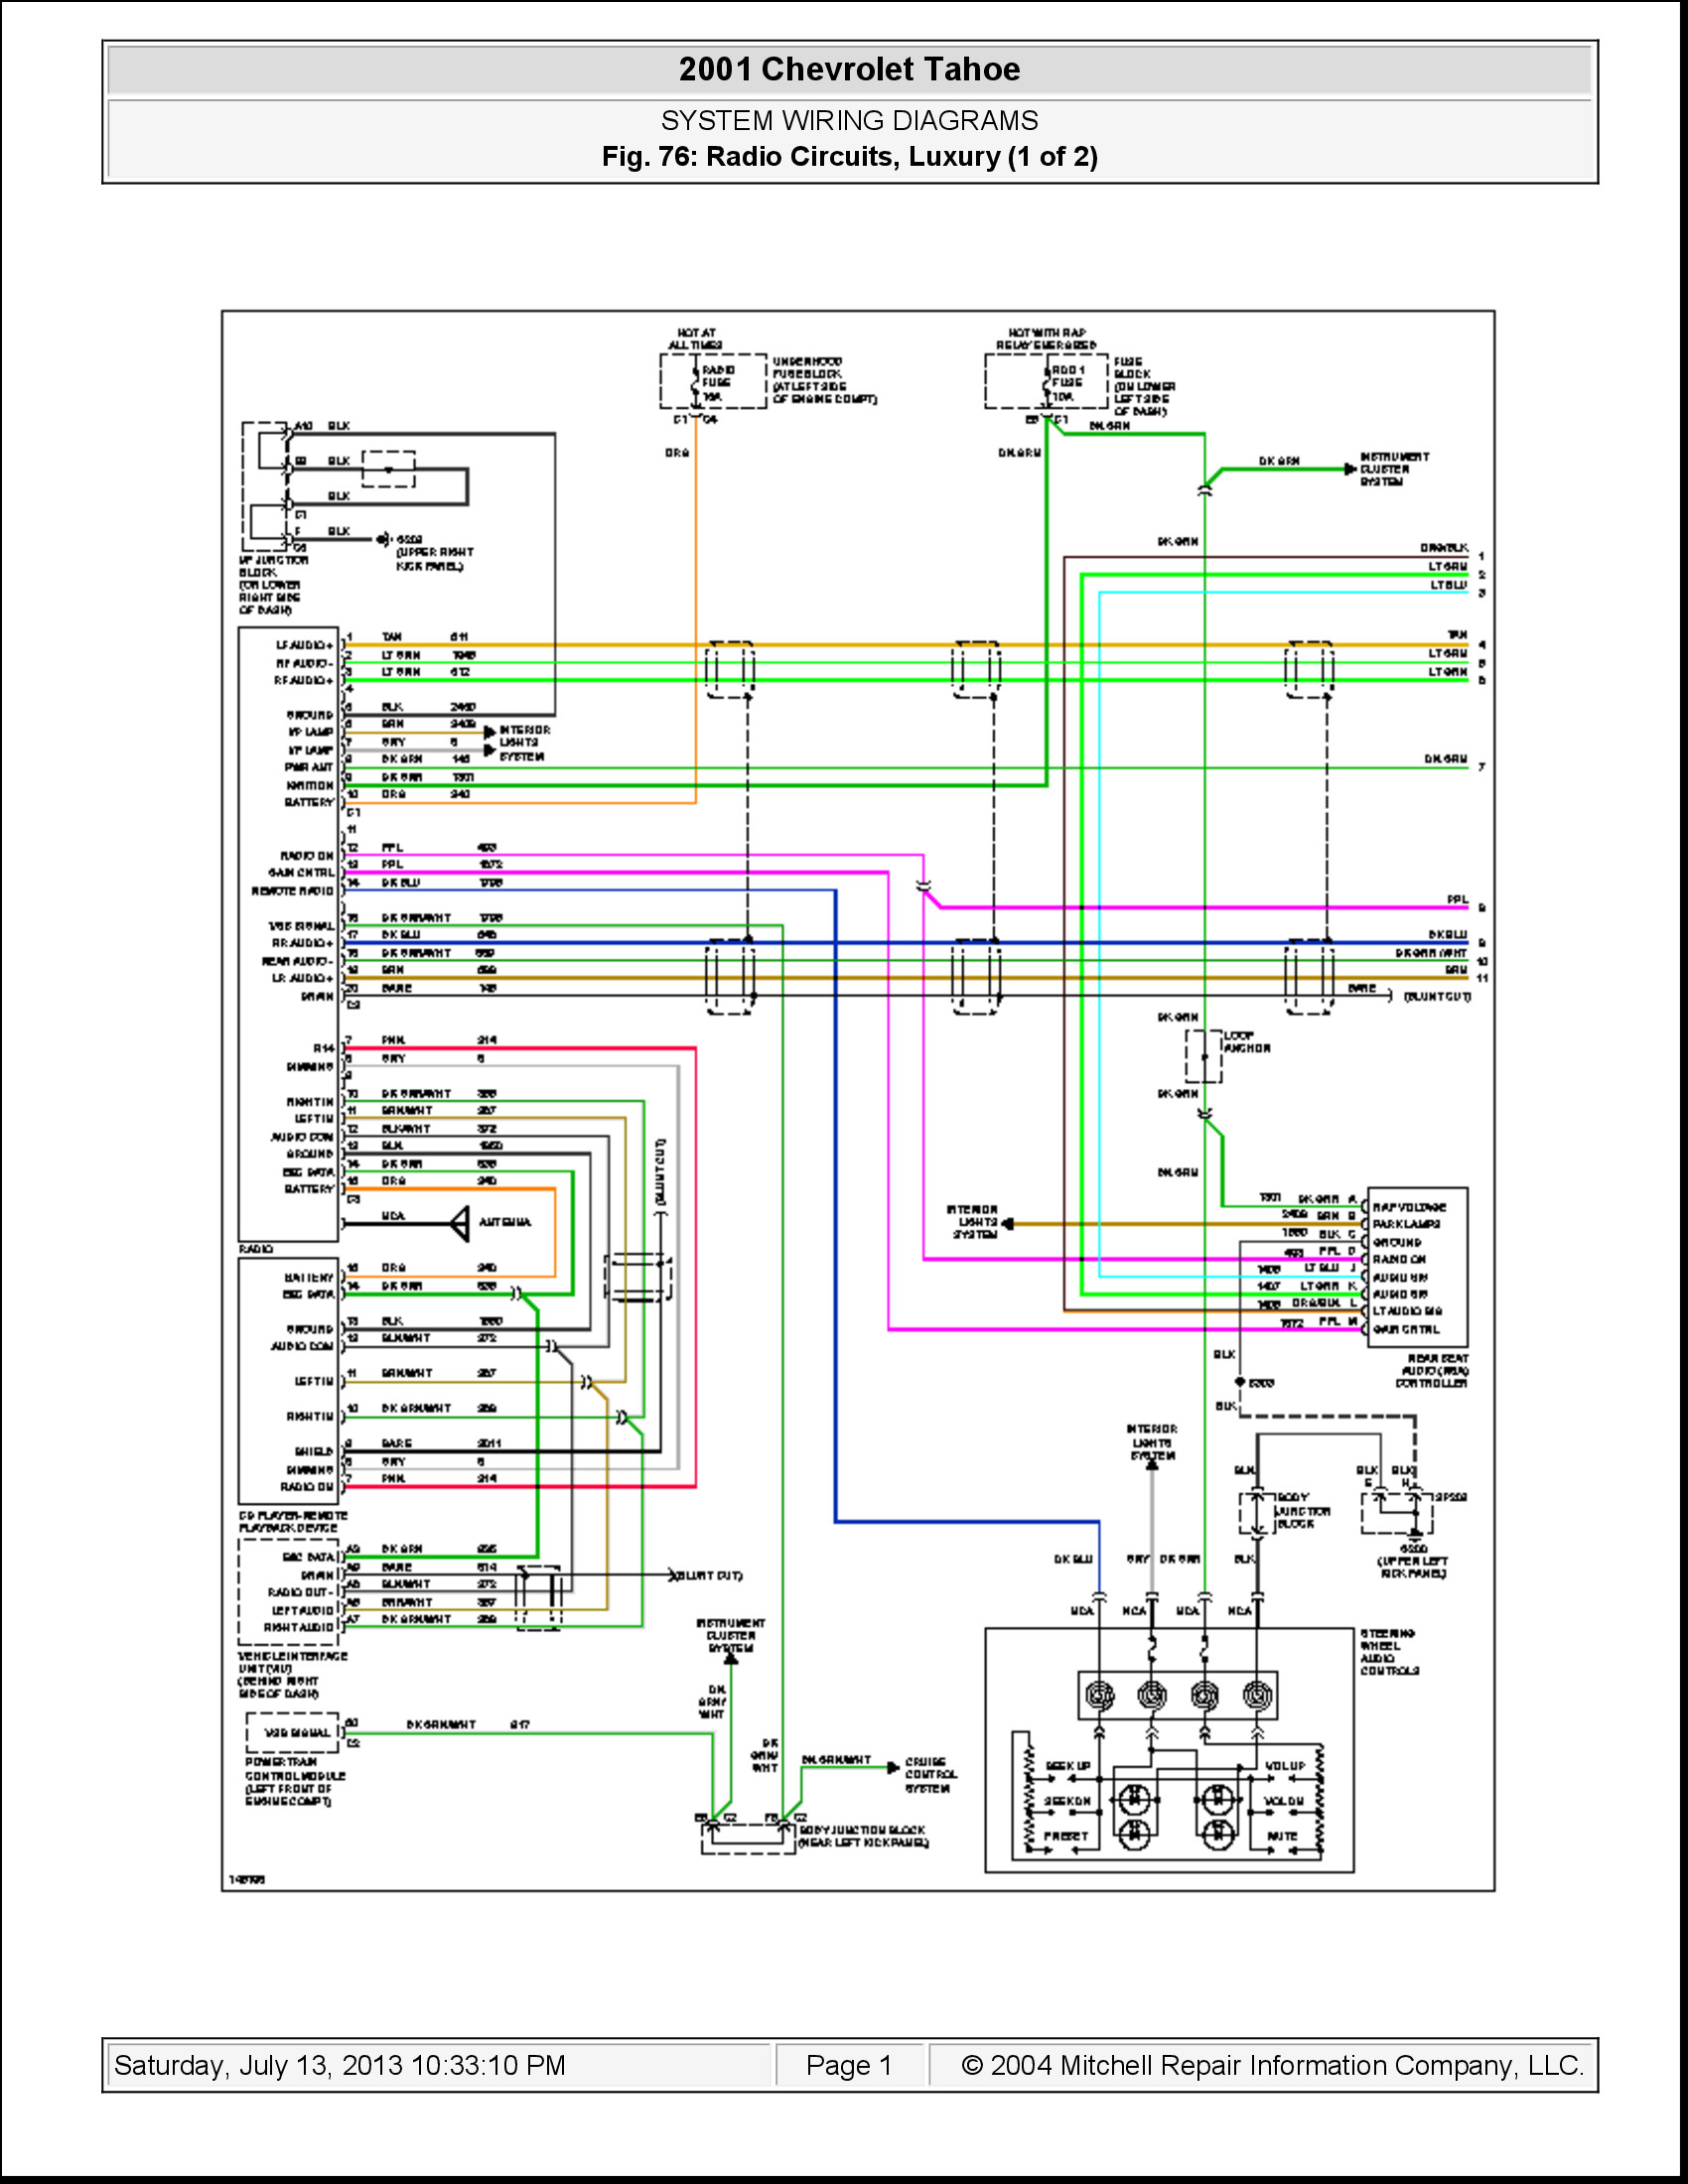 DIAGRAM] 98 Accord Cd Player Wiring Diagram FULL Version HD Quality Wiring  Diagram - ABOUTSUSPENSION.AMINESORCIER.FRaboutsuspension.aminesorcier.fr